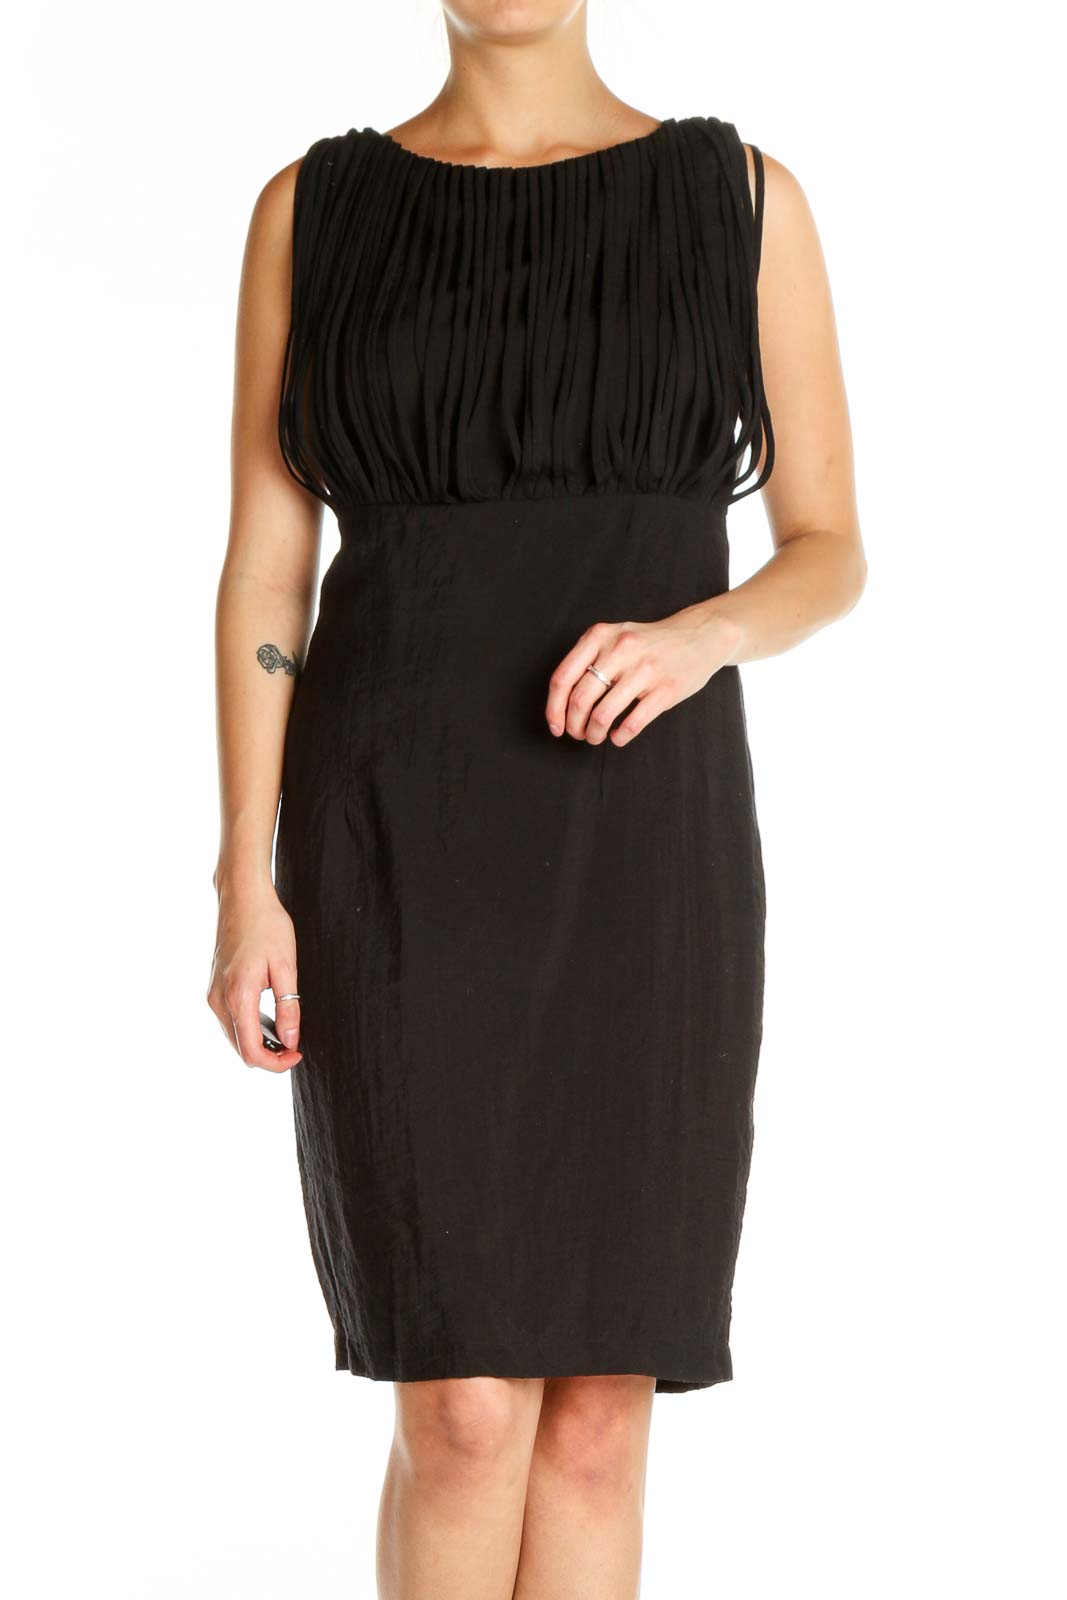 Black Solid Sheath Dress Front